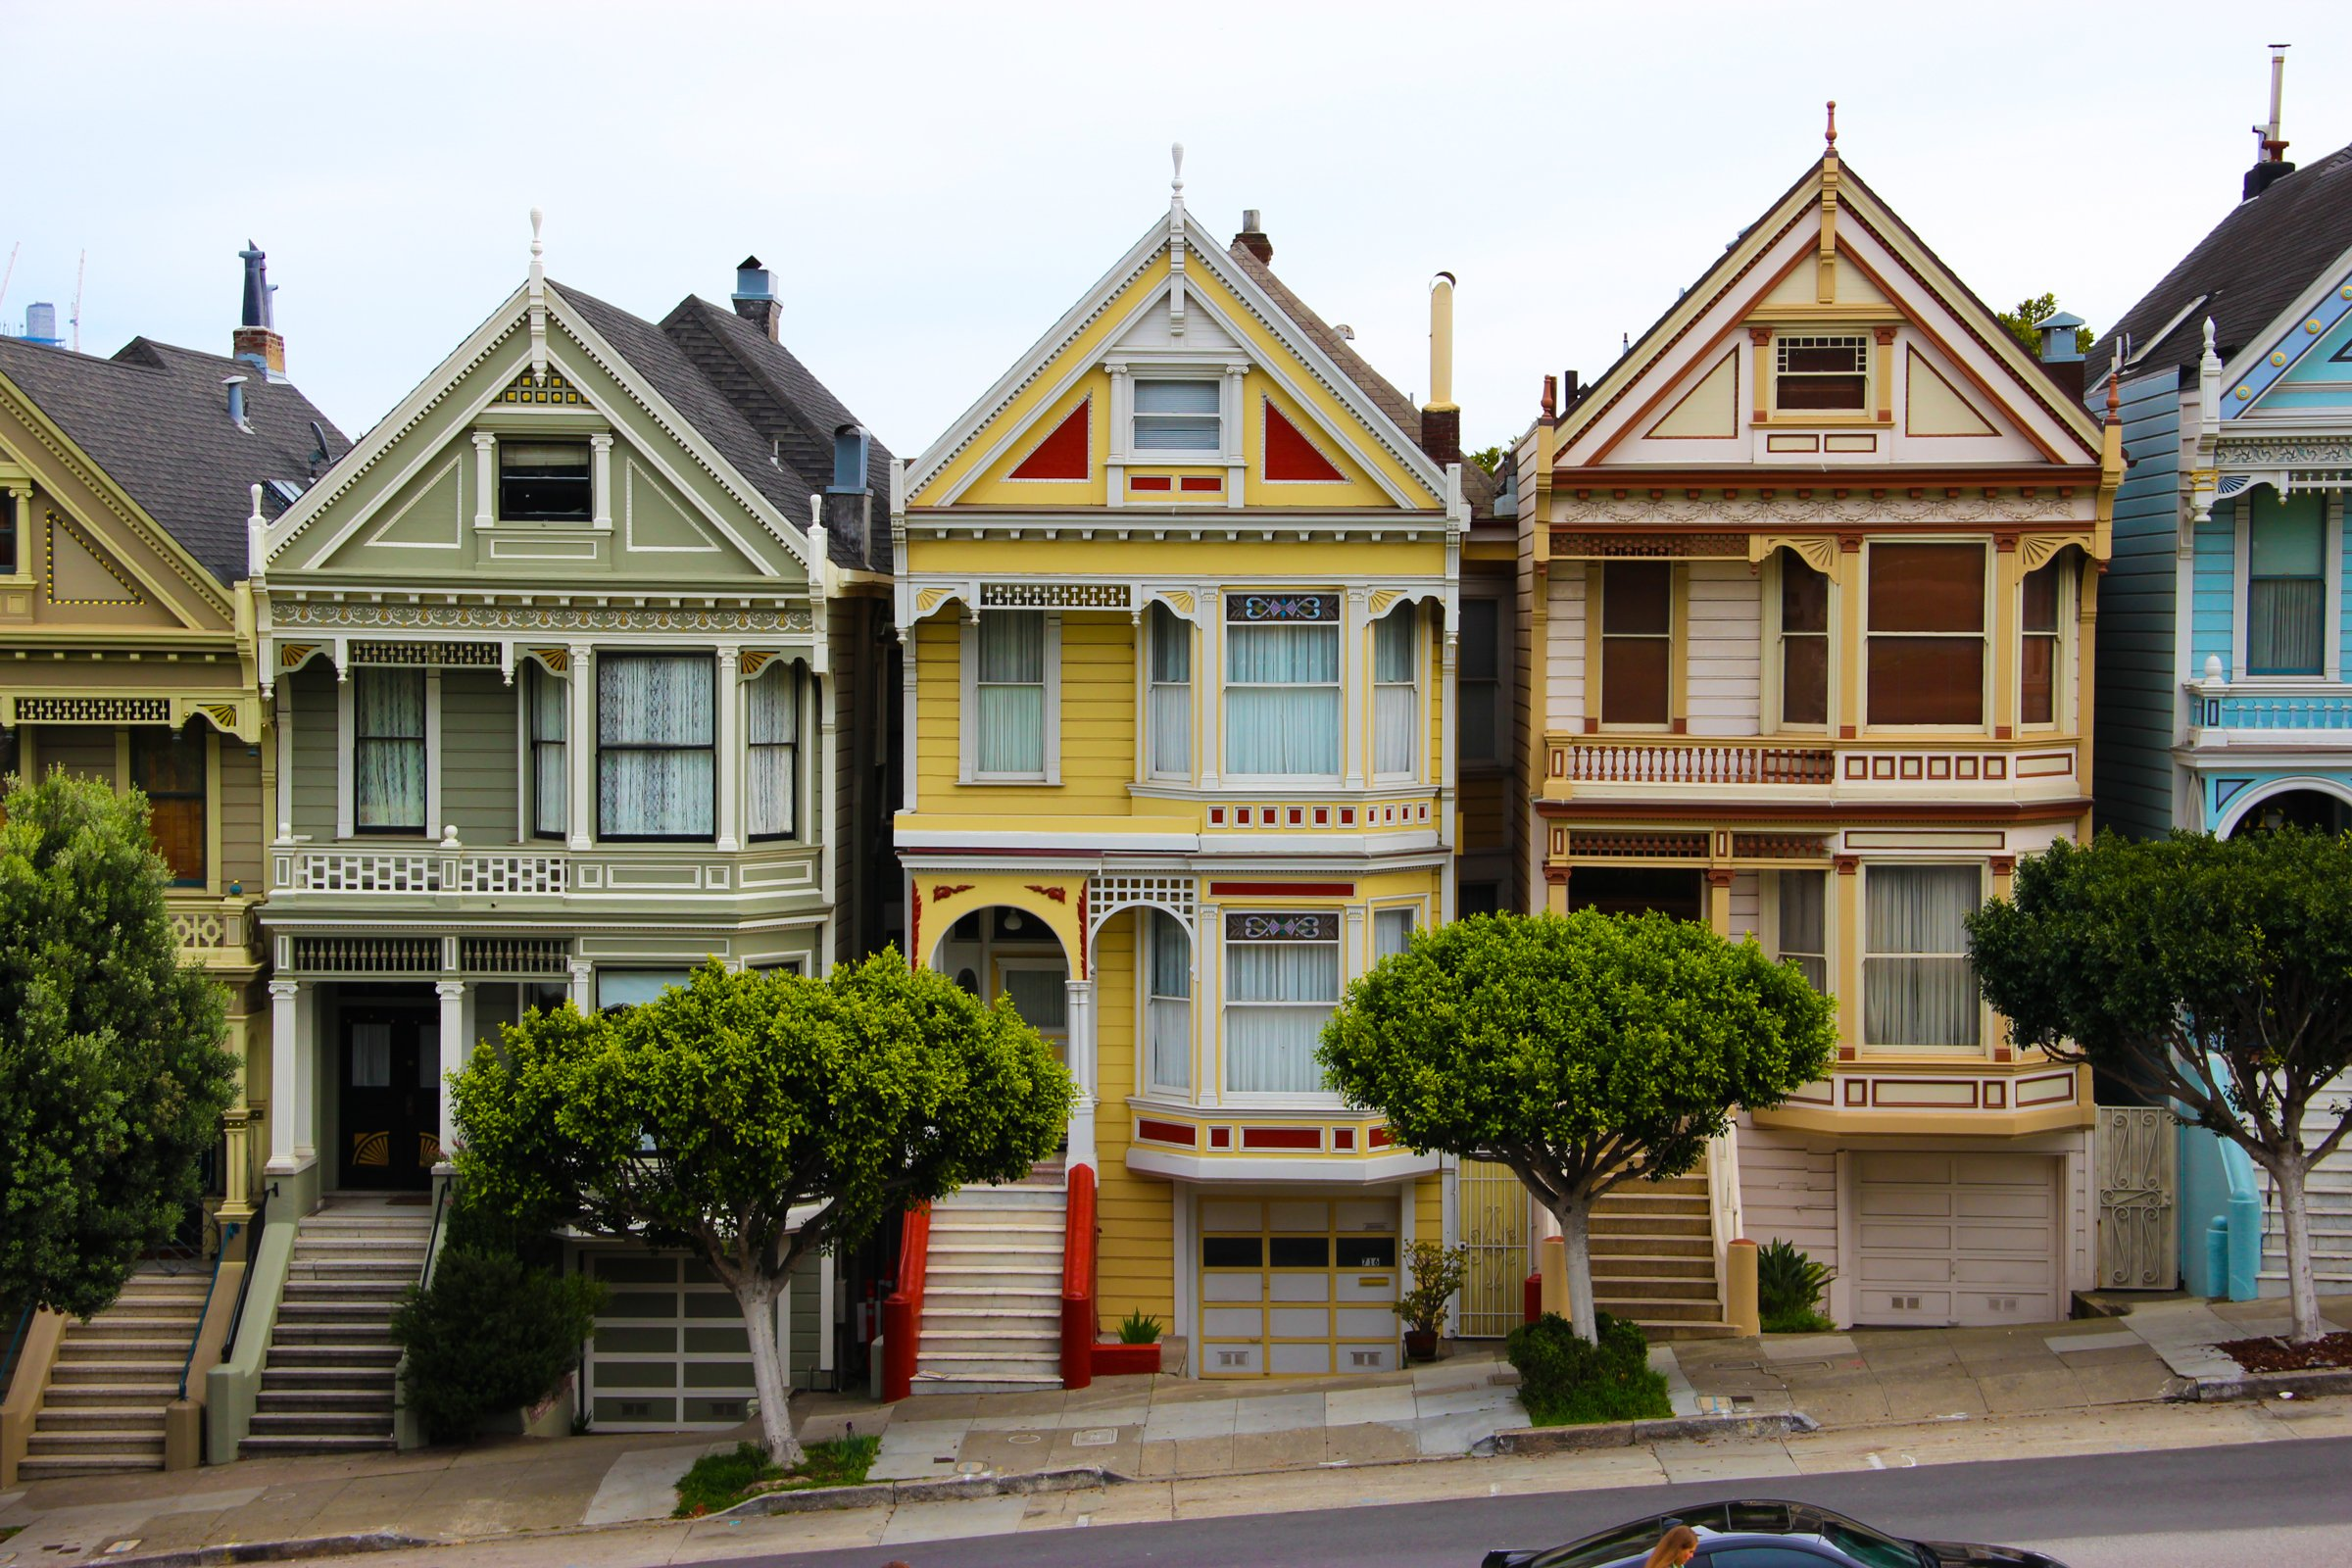 Free Stock Photo Of Colorful Houses On Slanted Street